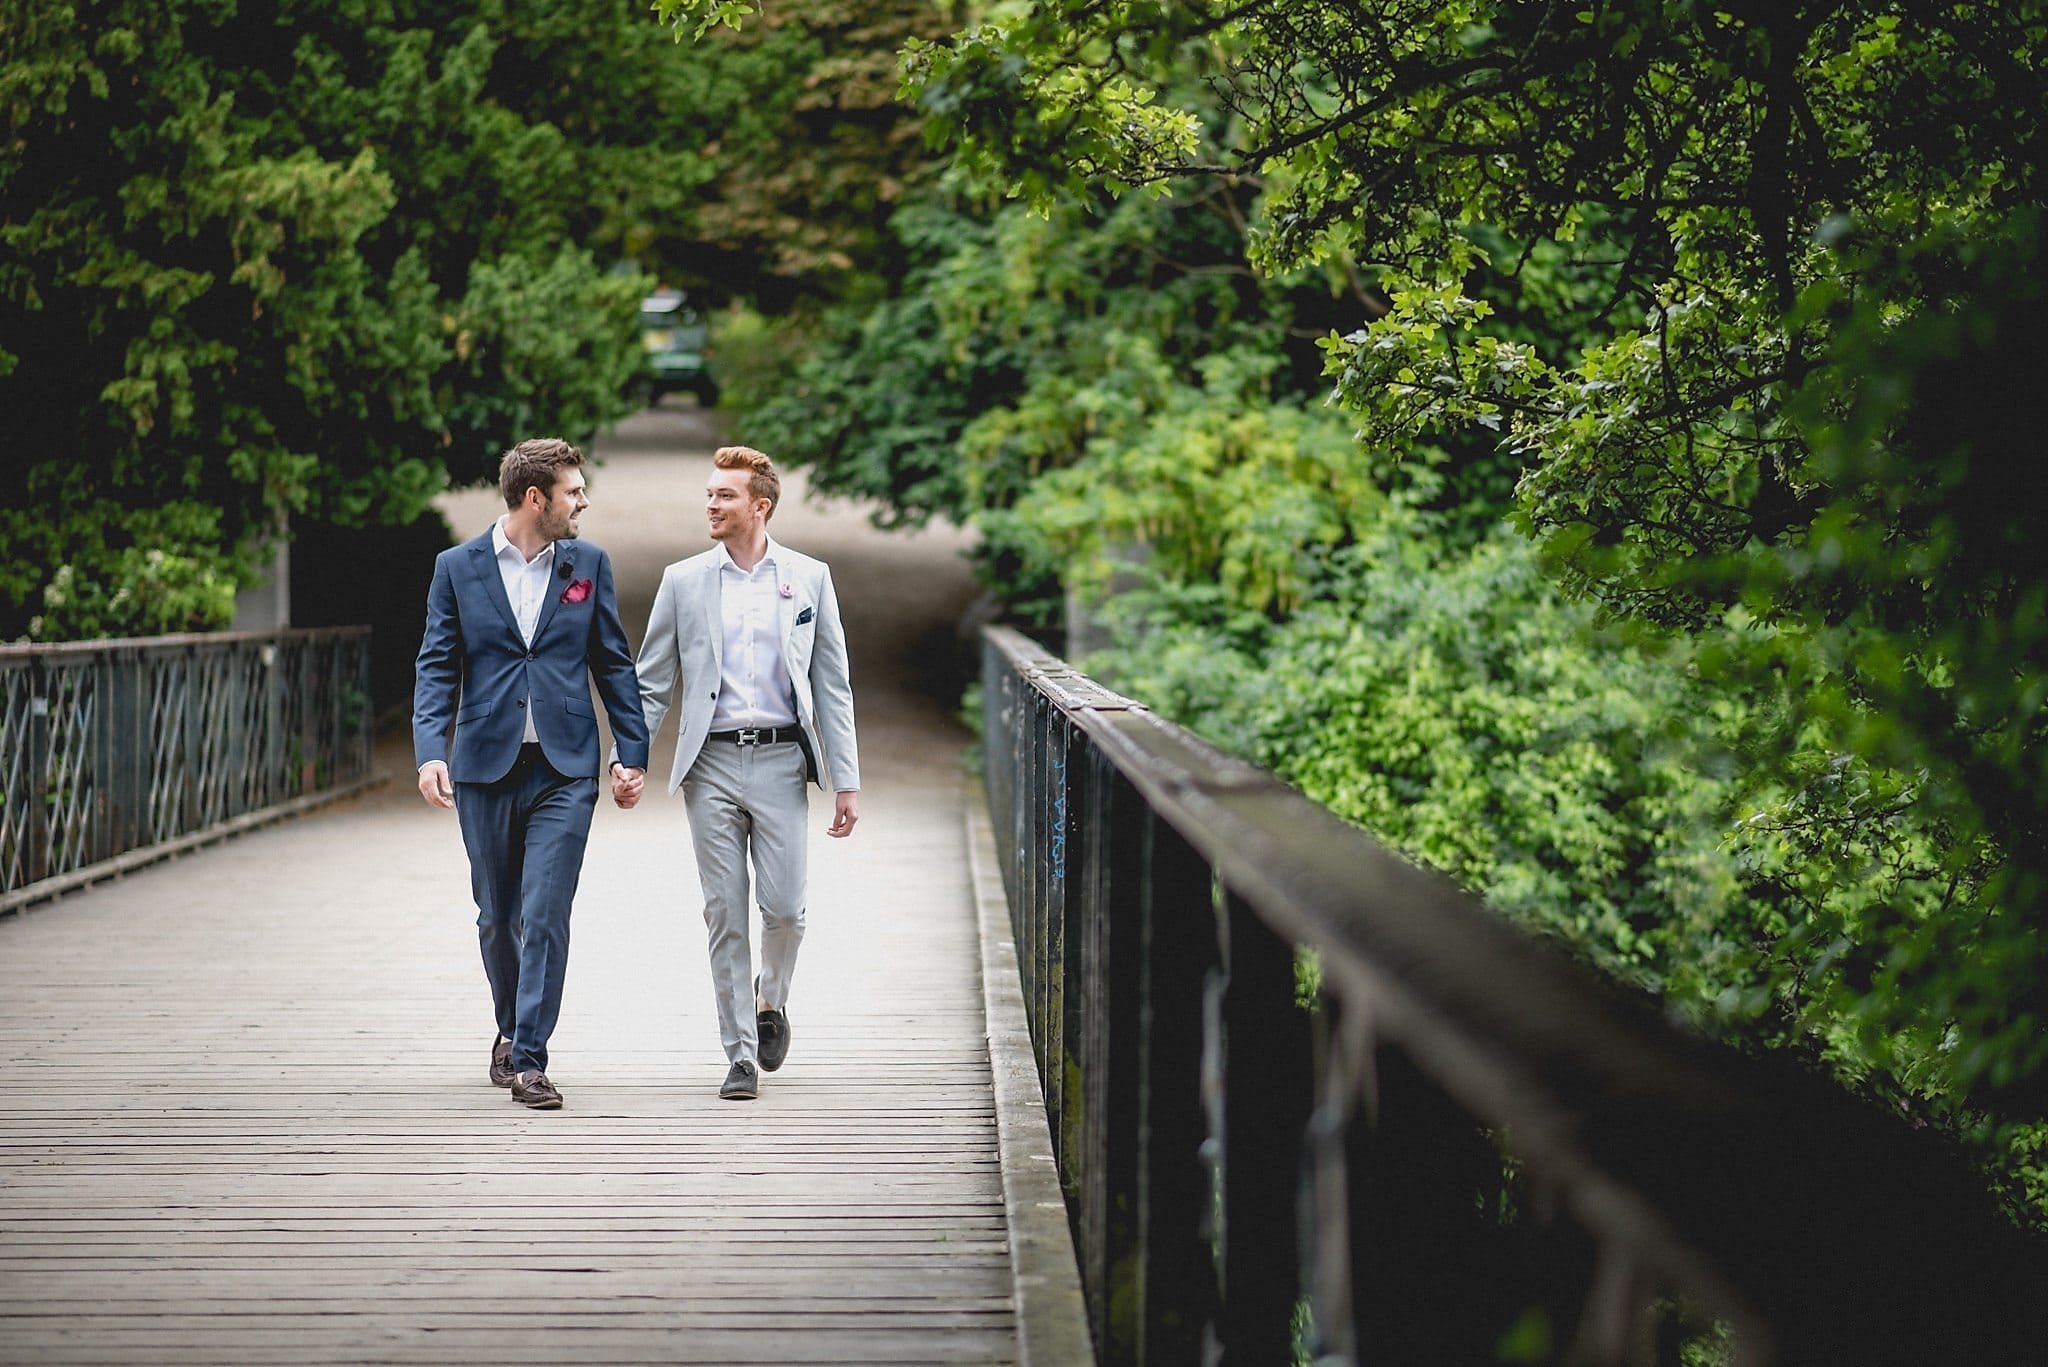 Same-sex couple walk hand in hand across the bridge in Ørstedsparken, Copenhagen